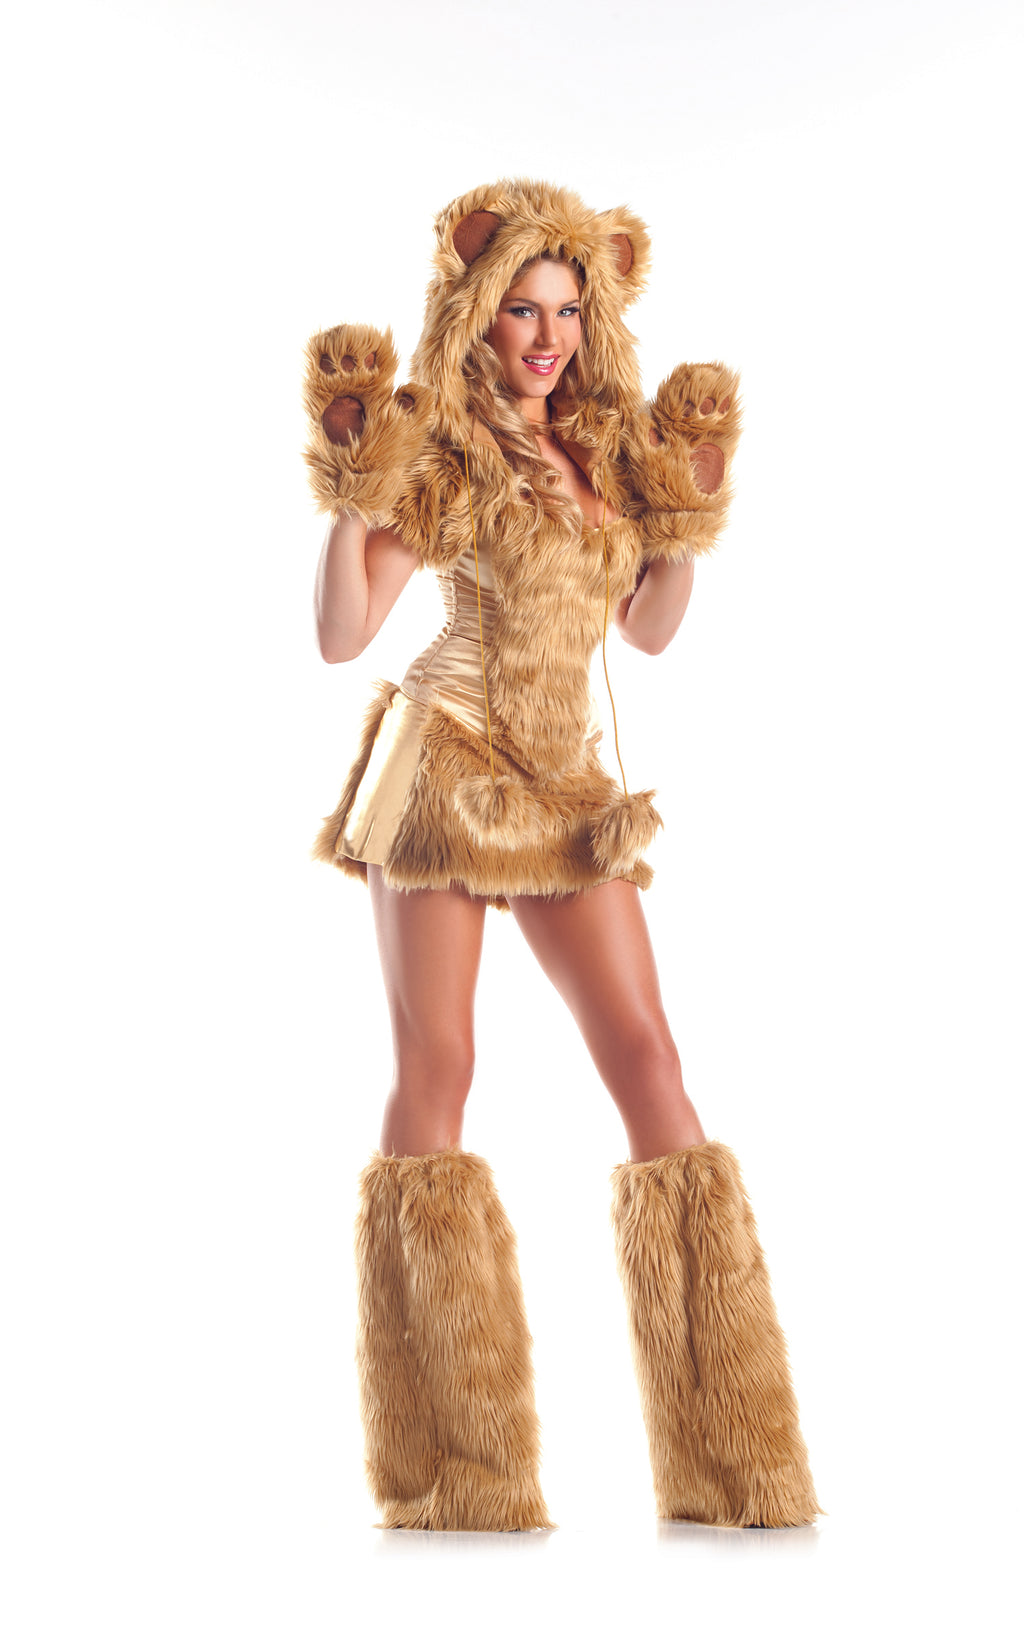 Adult-Women's-8-Piece-Sexy-Golden-Bear-Halloween-Party-Costume-With-Hood-&-Leg-Warmers